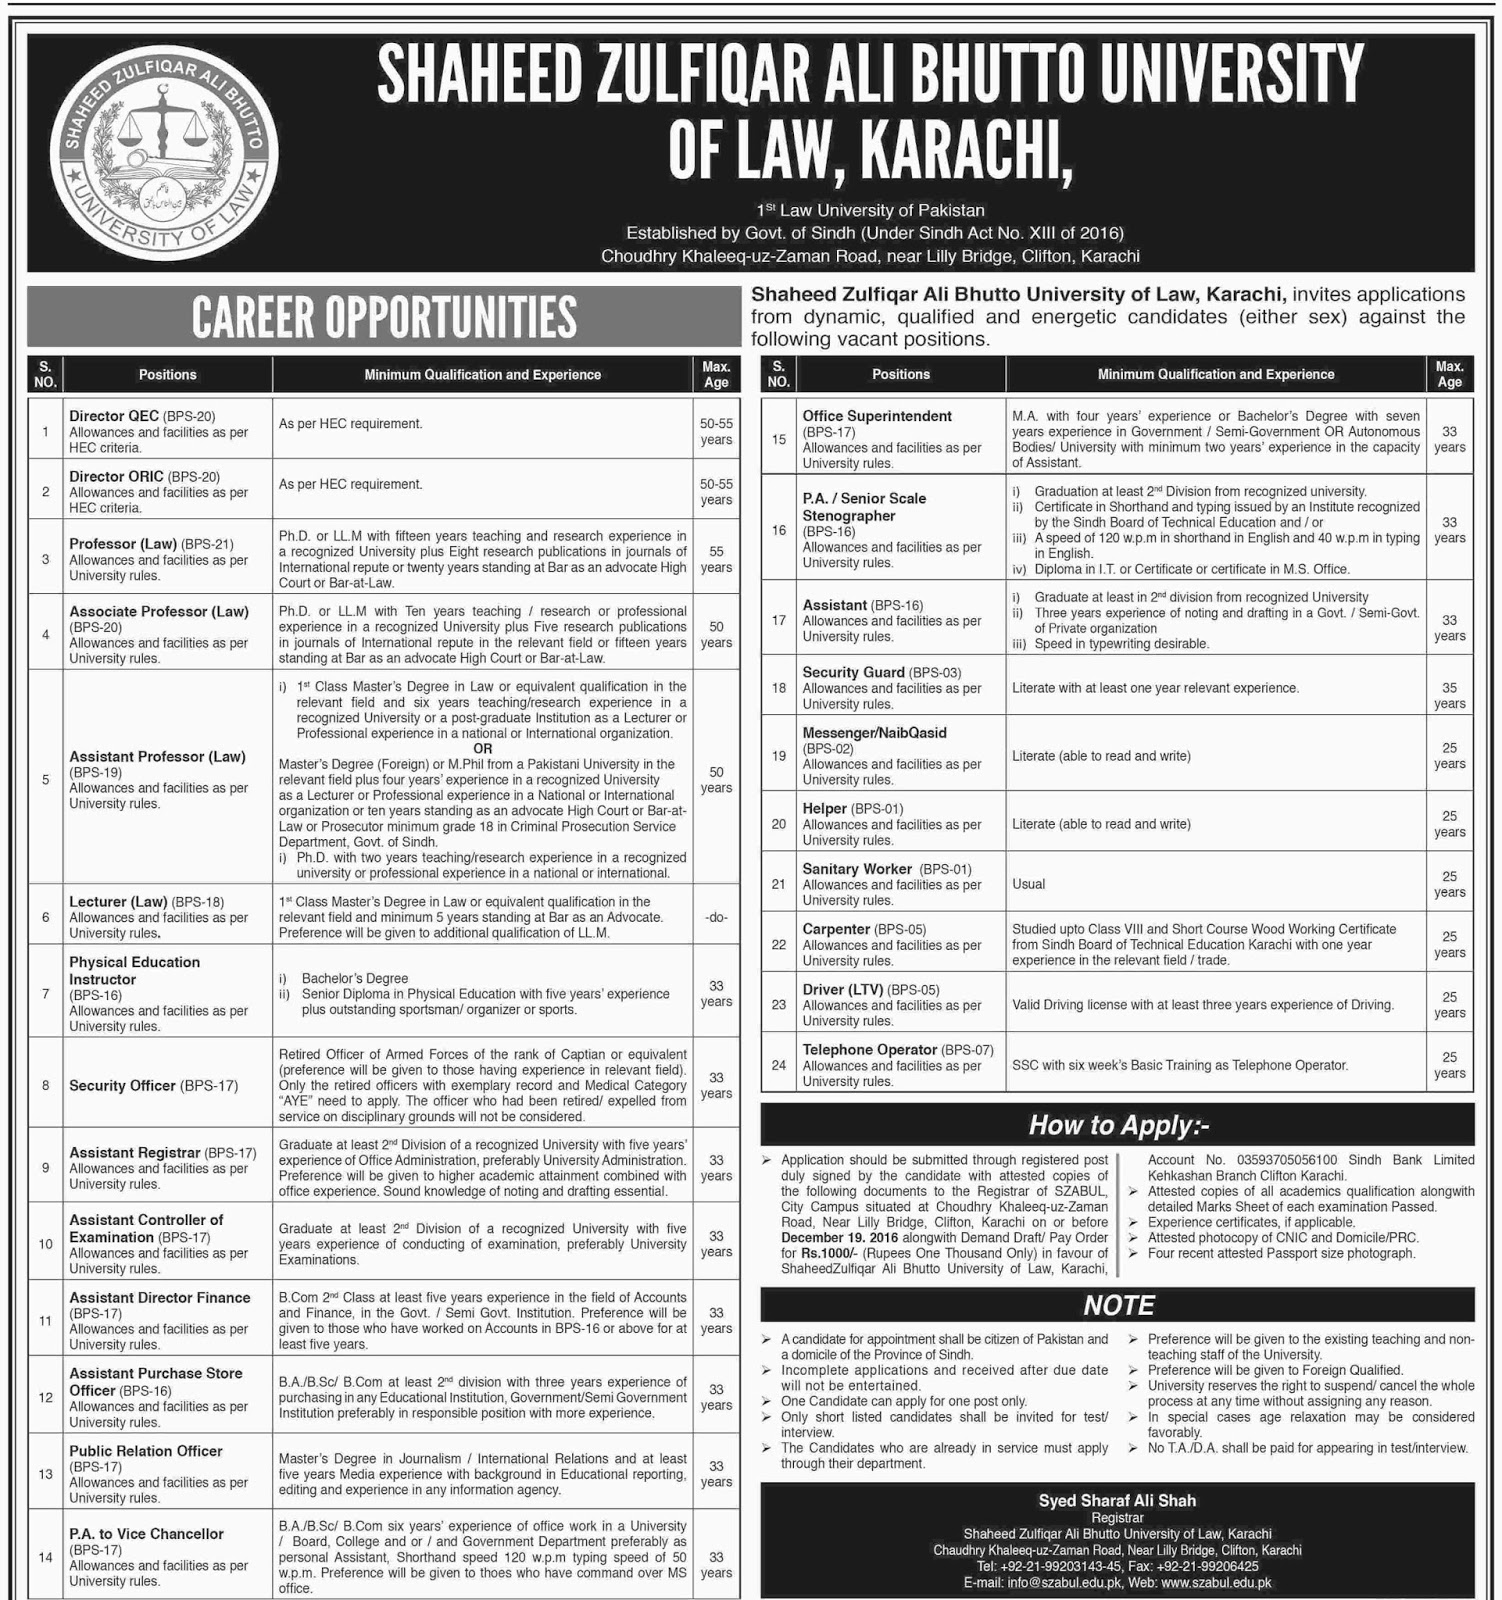 Shaheed Zulfiqar Ali Bhutto University of Law Karachi Jobs